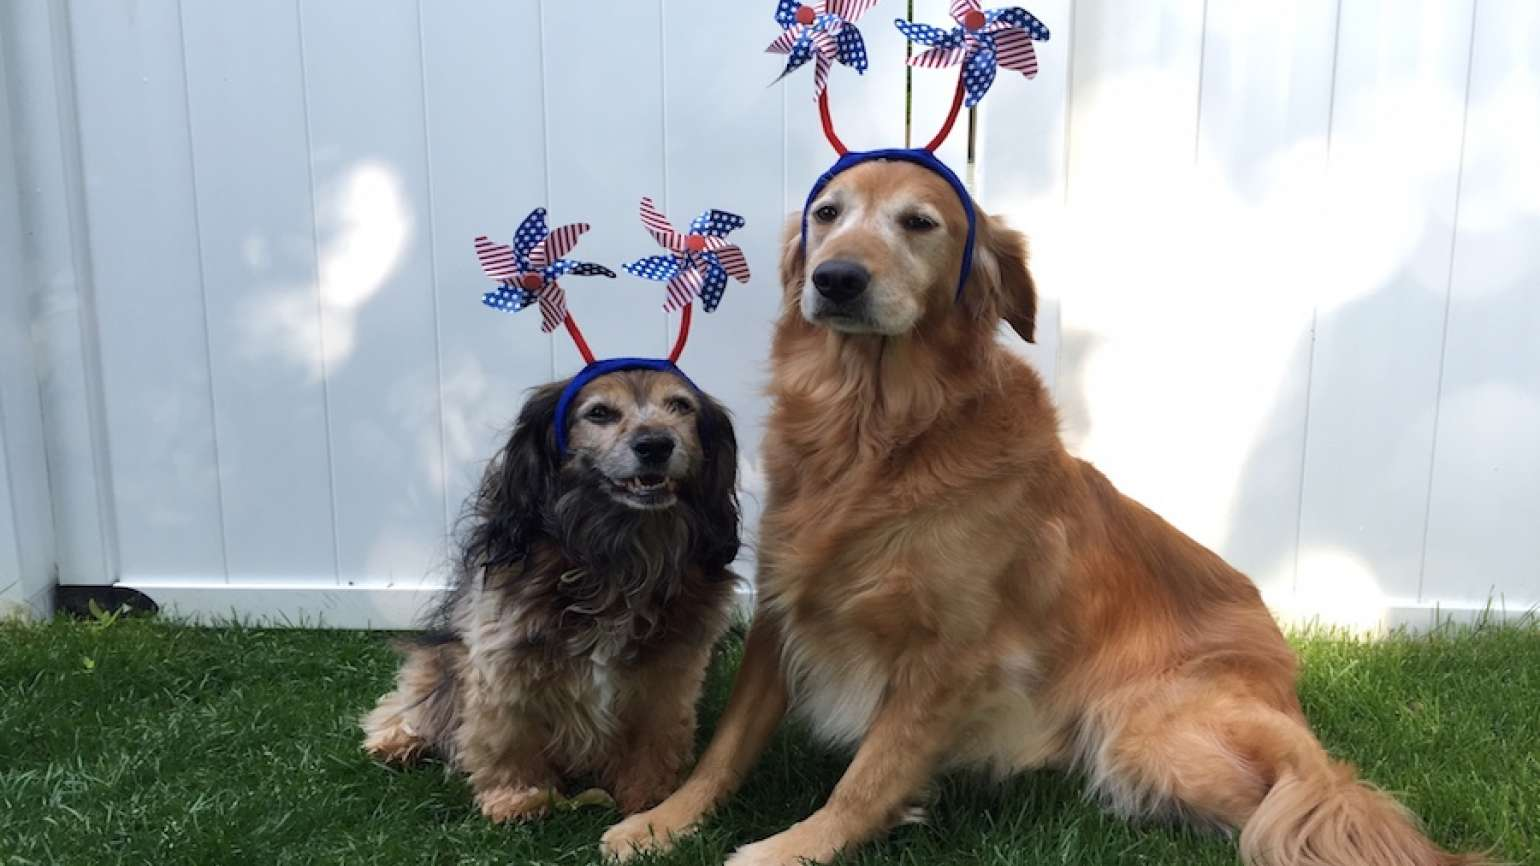 Two dogs who love the 4th of July fireworks!